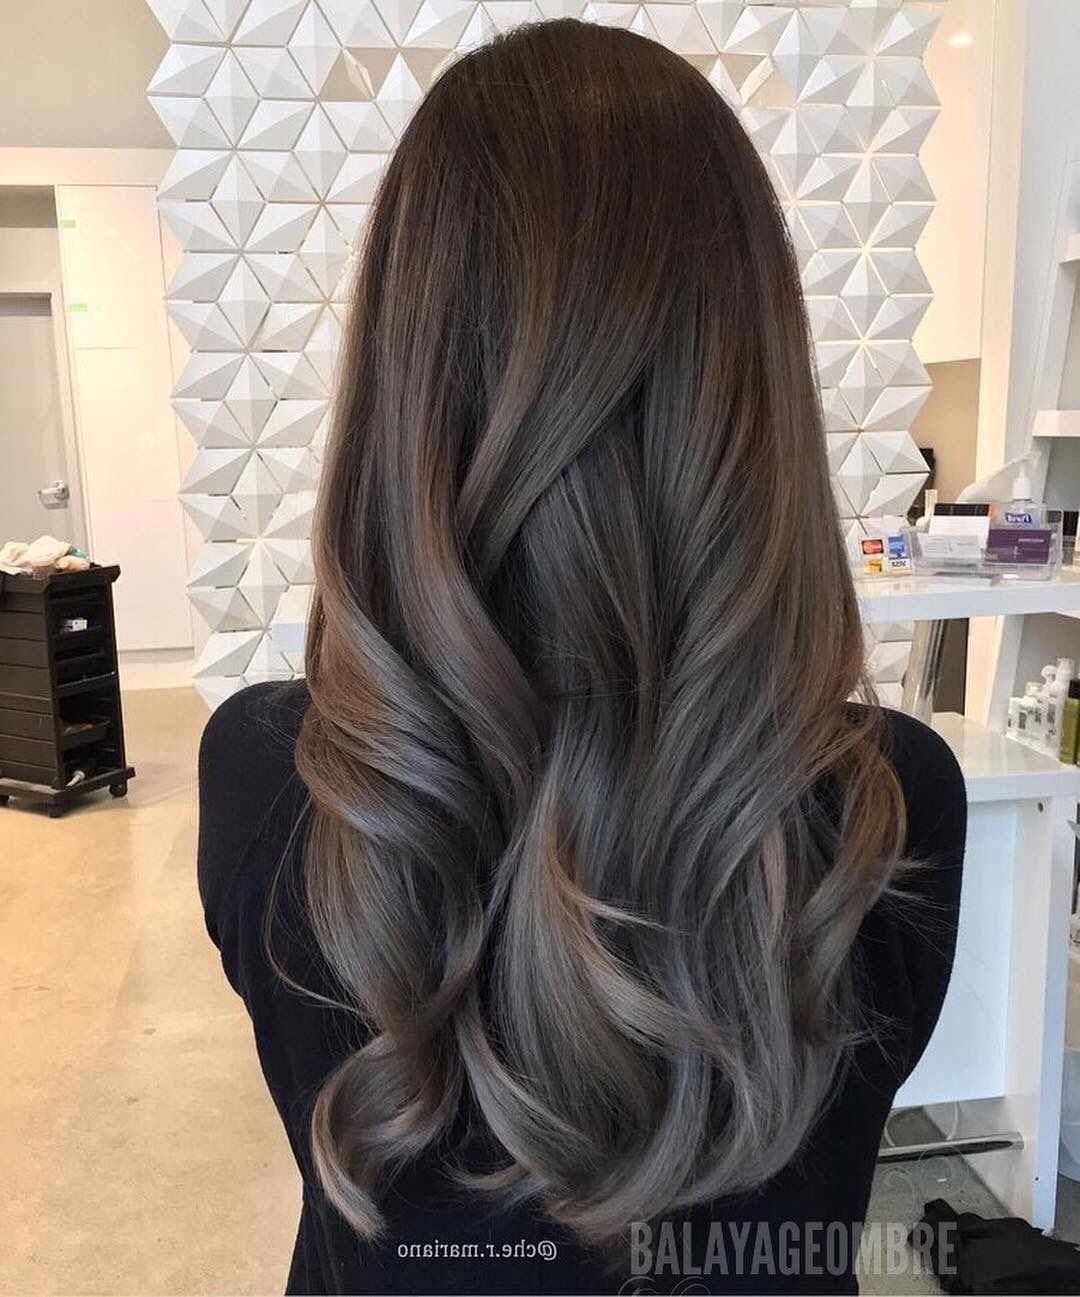 Pin By Everyday Hairstyles On Everyday Hairstyles Short Volo Warna Rambut Warna Rambut Ombre Ide Warna Rambut